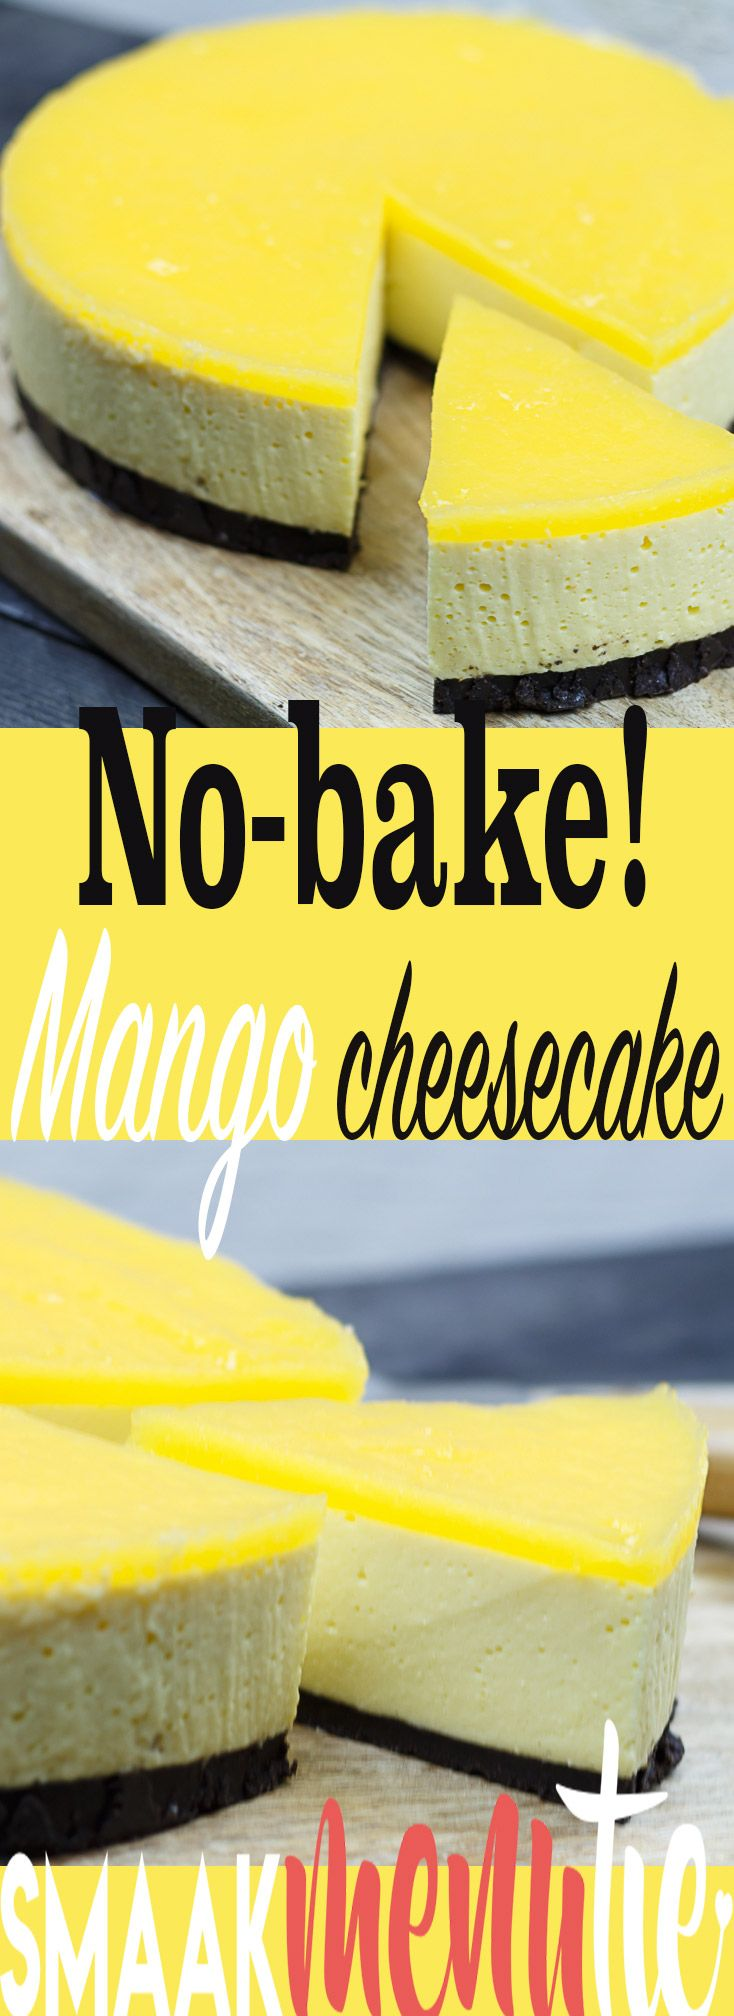 No-bake! Mango cheesecake #recept #recipe #nobake #cheesecake #mango #taart #cake